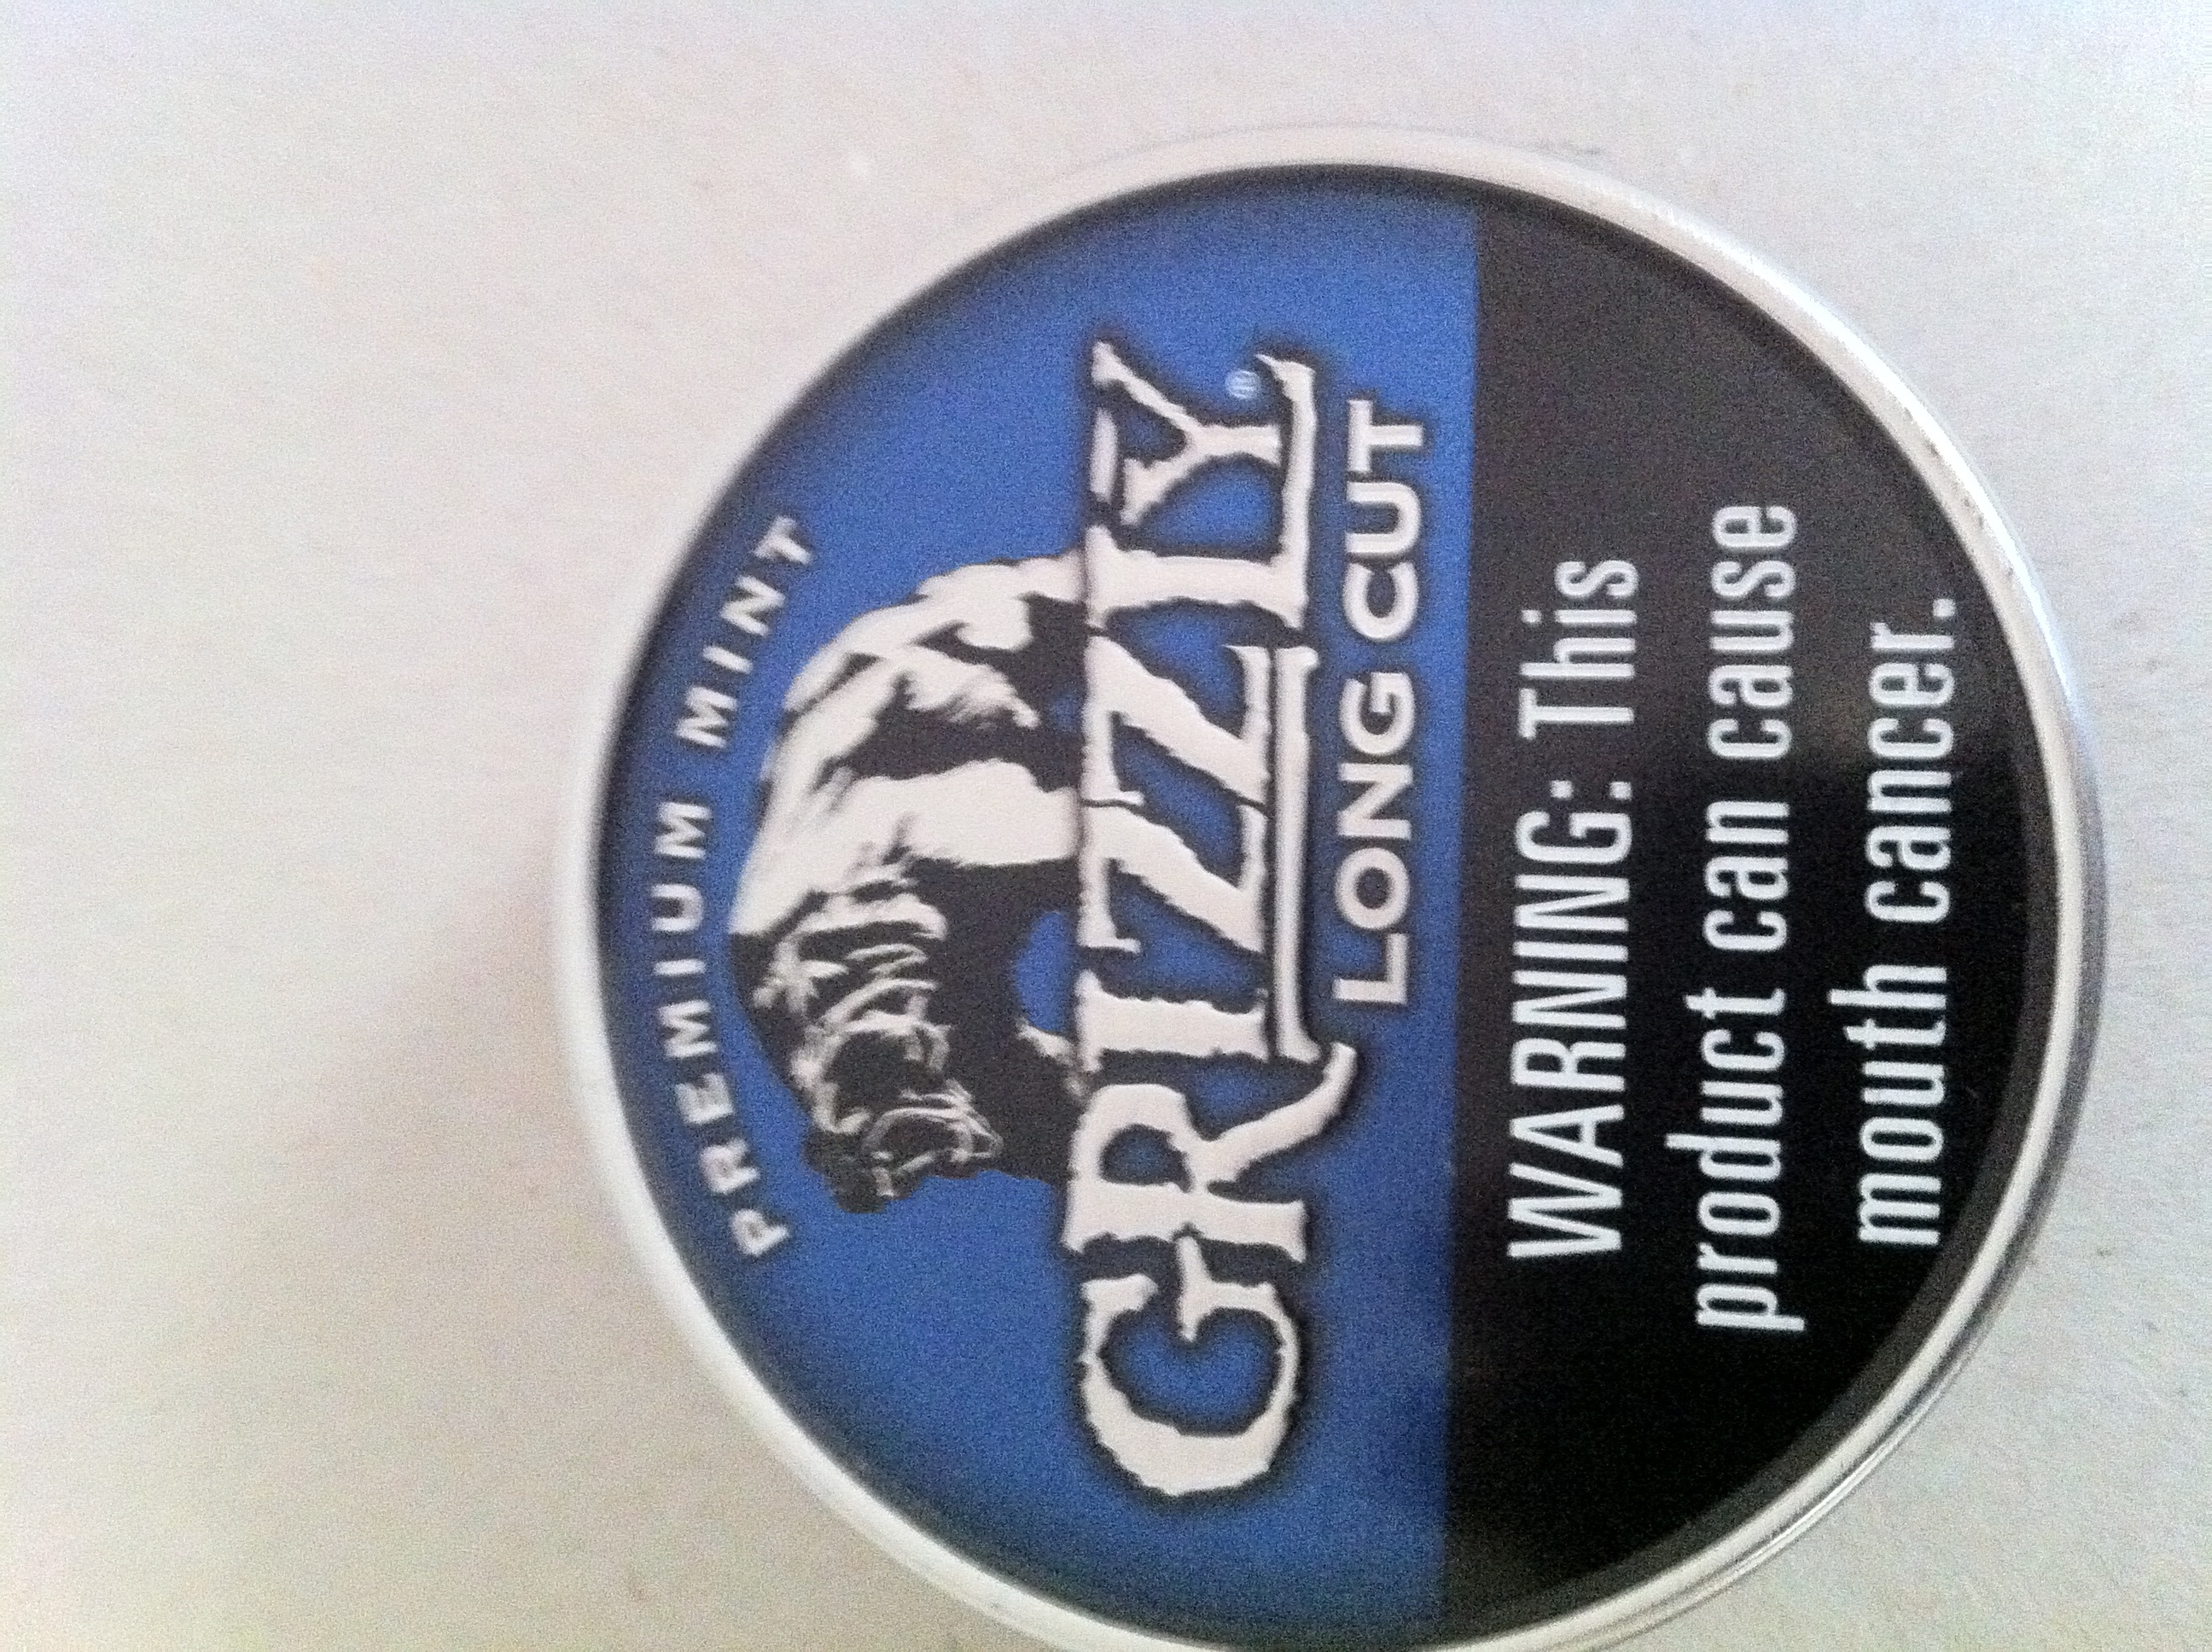 grizzly tobacco wikipedia